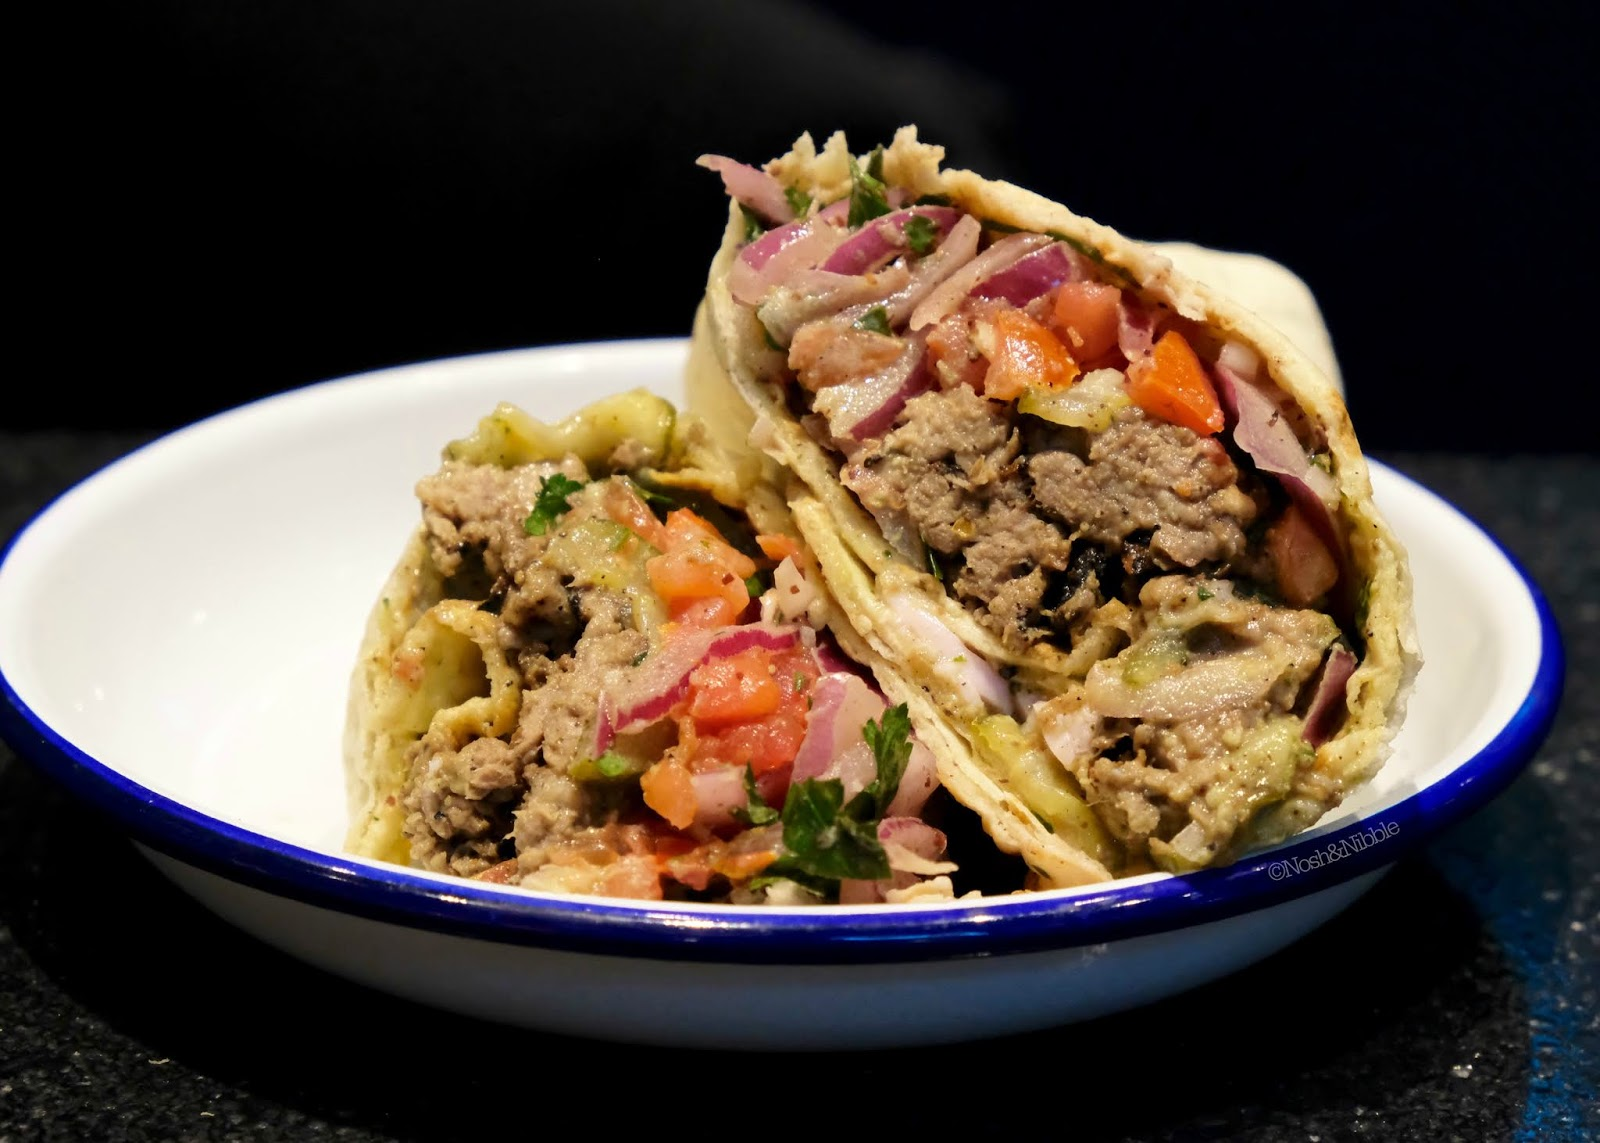 Superbaba | Steak Wrap: Review